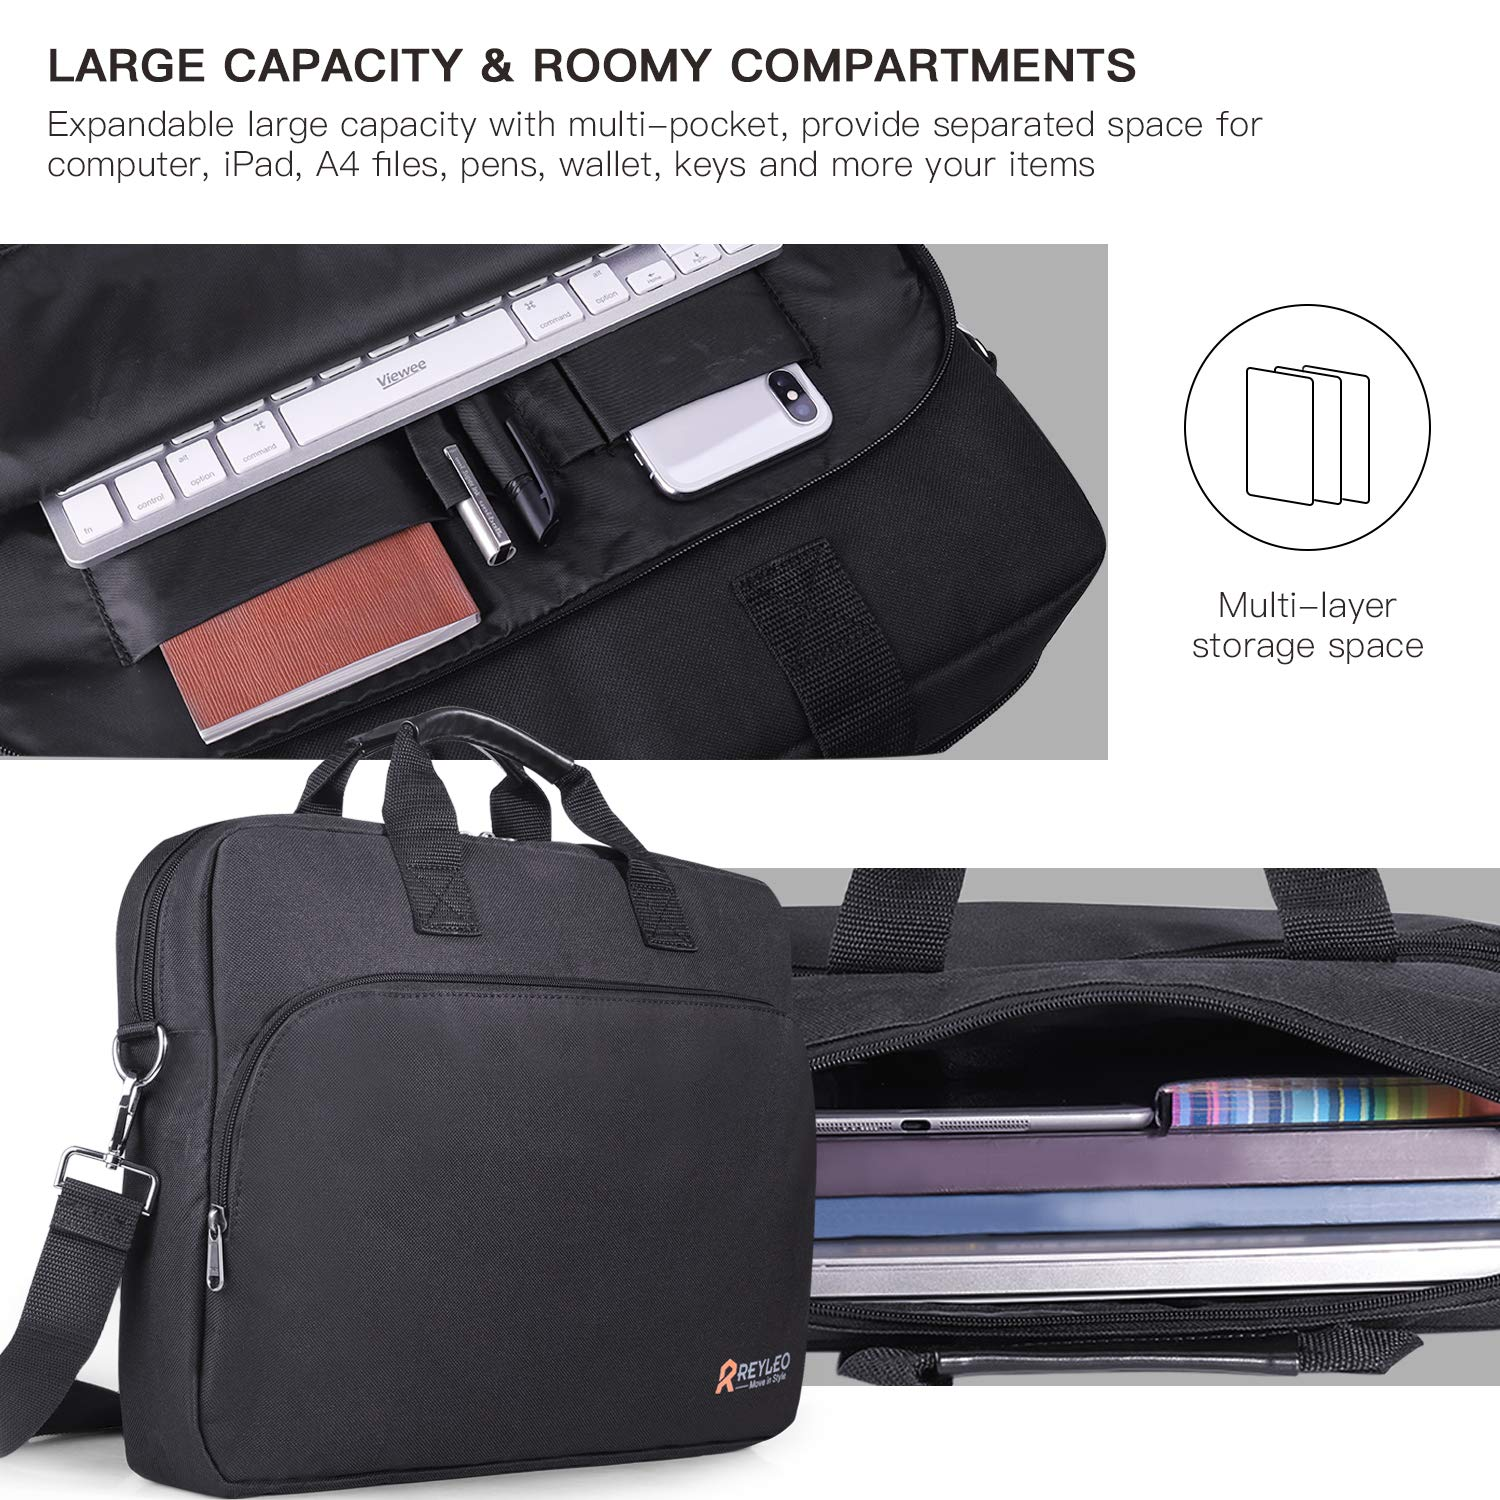 REYLEO 15.6 Inch Laptop Bag Travel Briefcase with Luggage Strap Water Resistant Shoulder Bag Business Messenger Briefcases for Men and Women Fits Laptop Computer Tablet, LCB1B by REYLEO (Image #2)